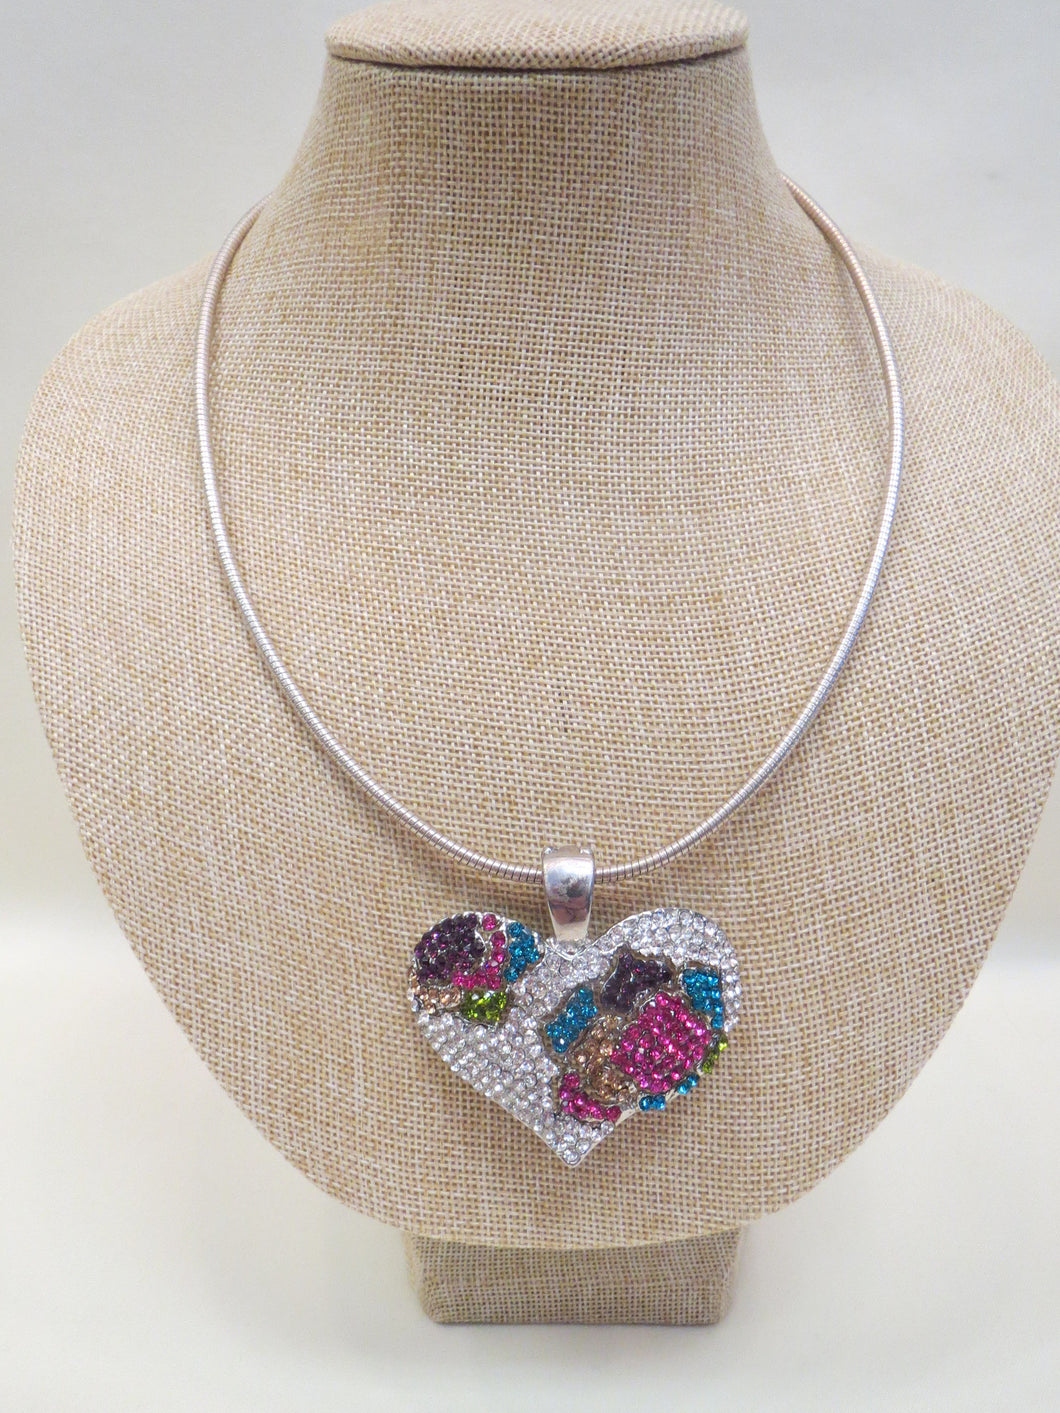 ADO | Embellished Heart Pendant Choker Necklace - All Decd Out